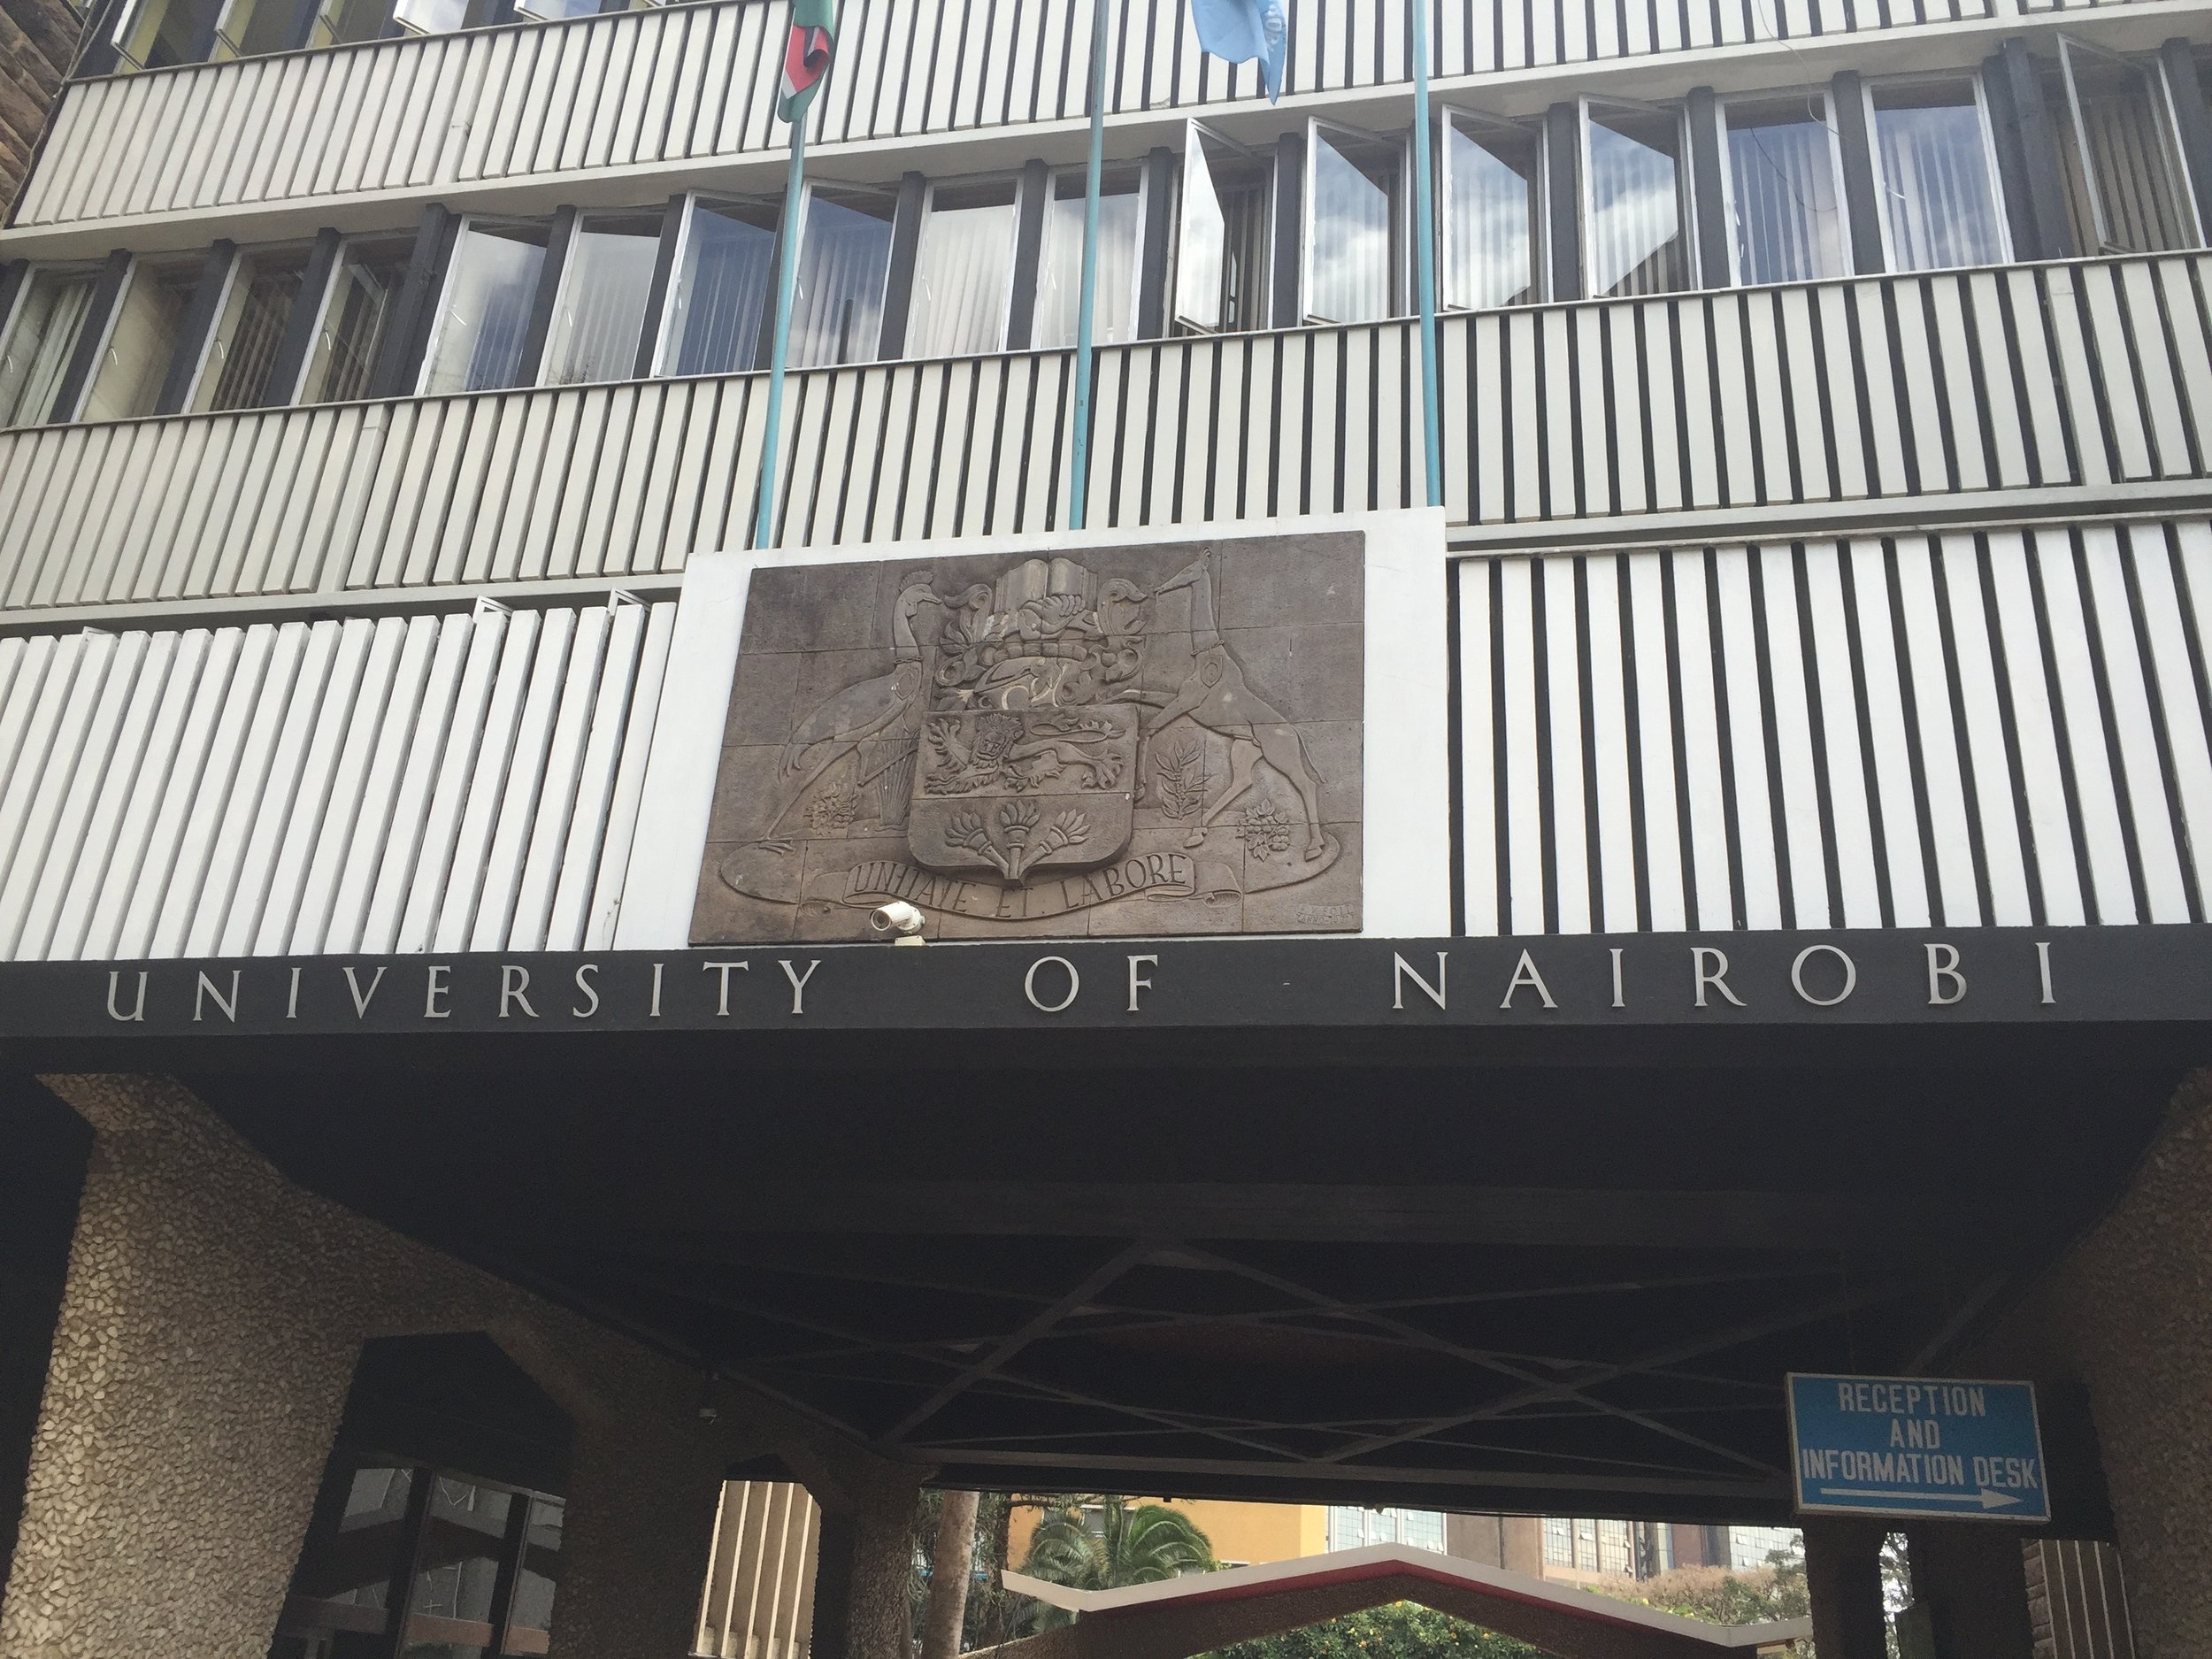 Meetings were held at the University of Nairobi to assess potential partnerships with some of their ag. students.